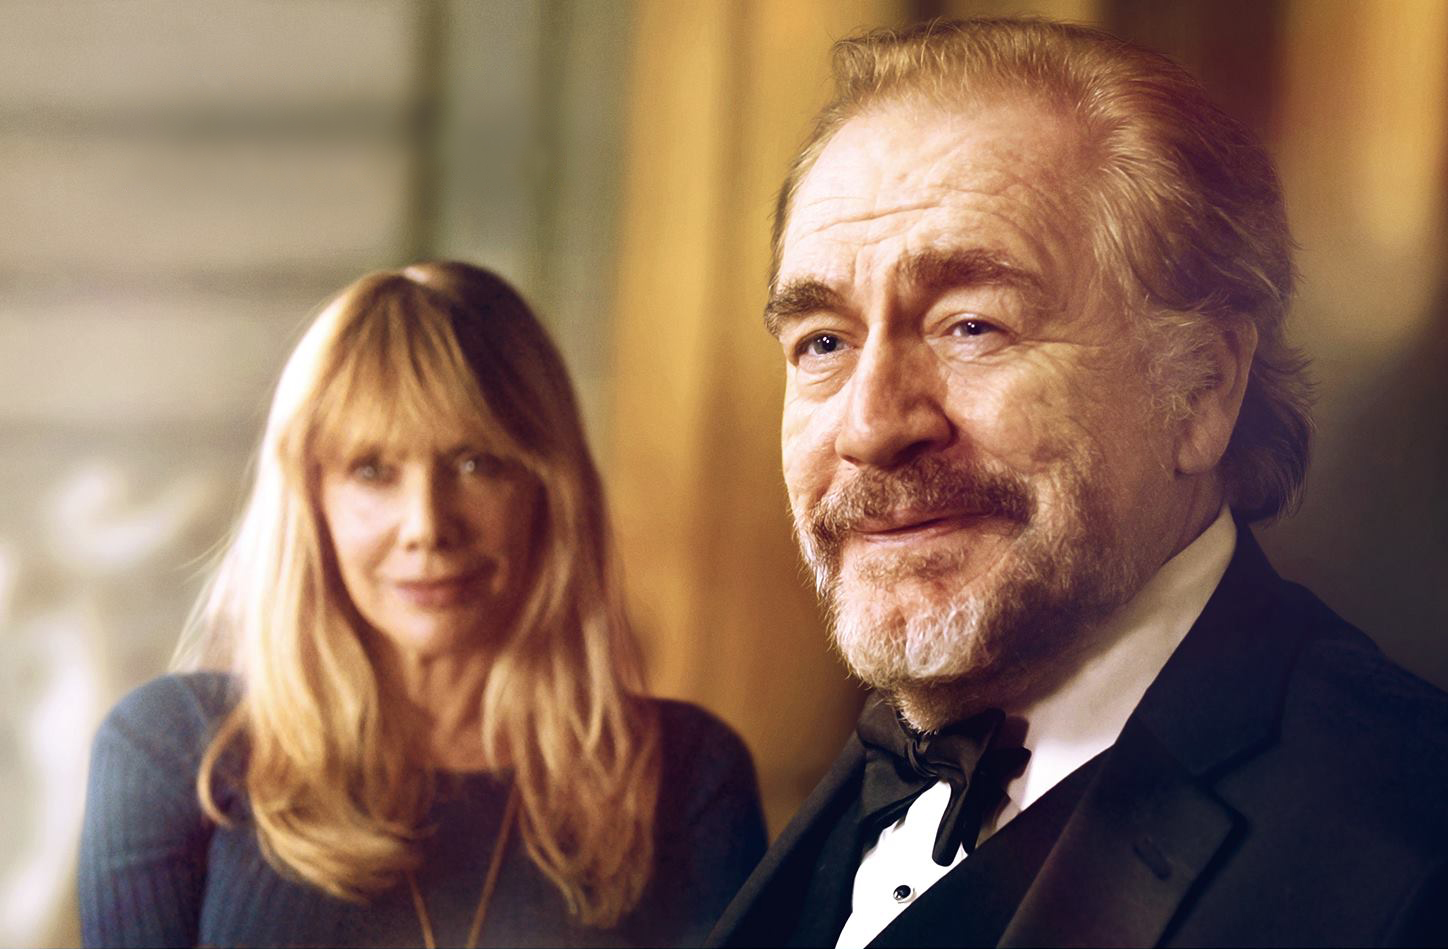 Rosanna Arquette and Brian Cox in The Etruscan Smile.